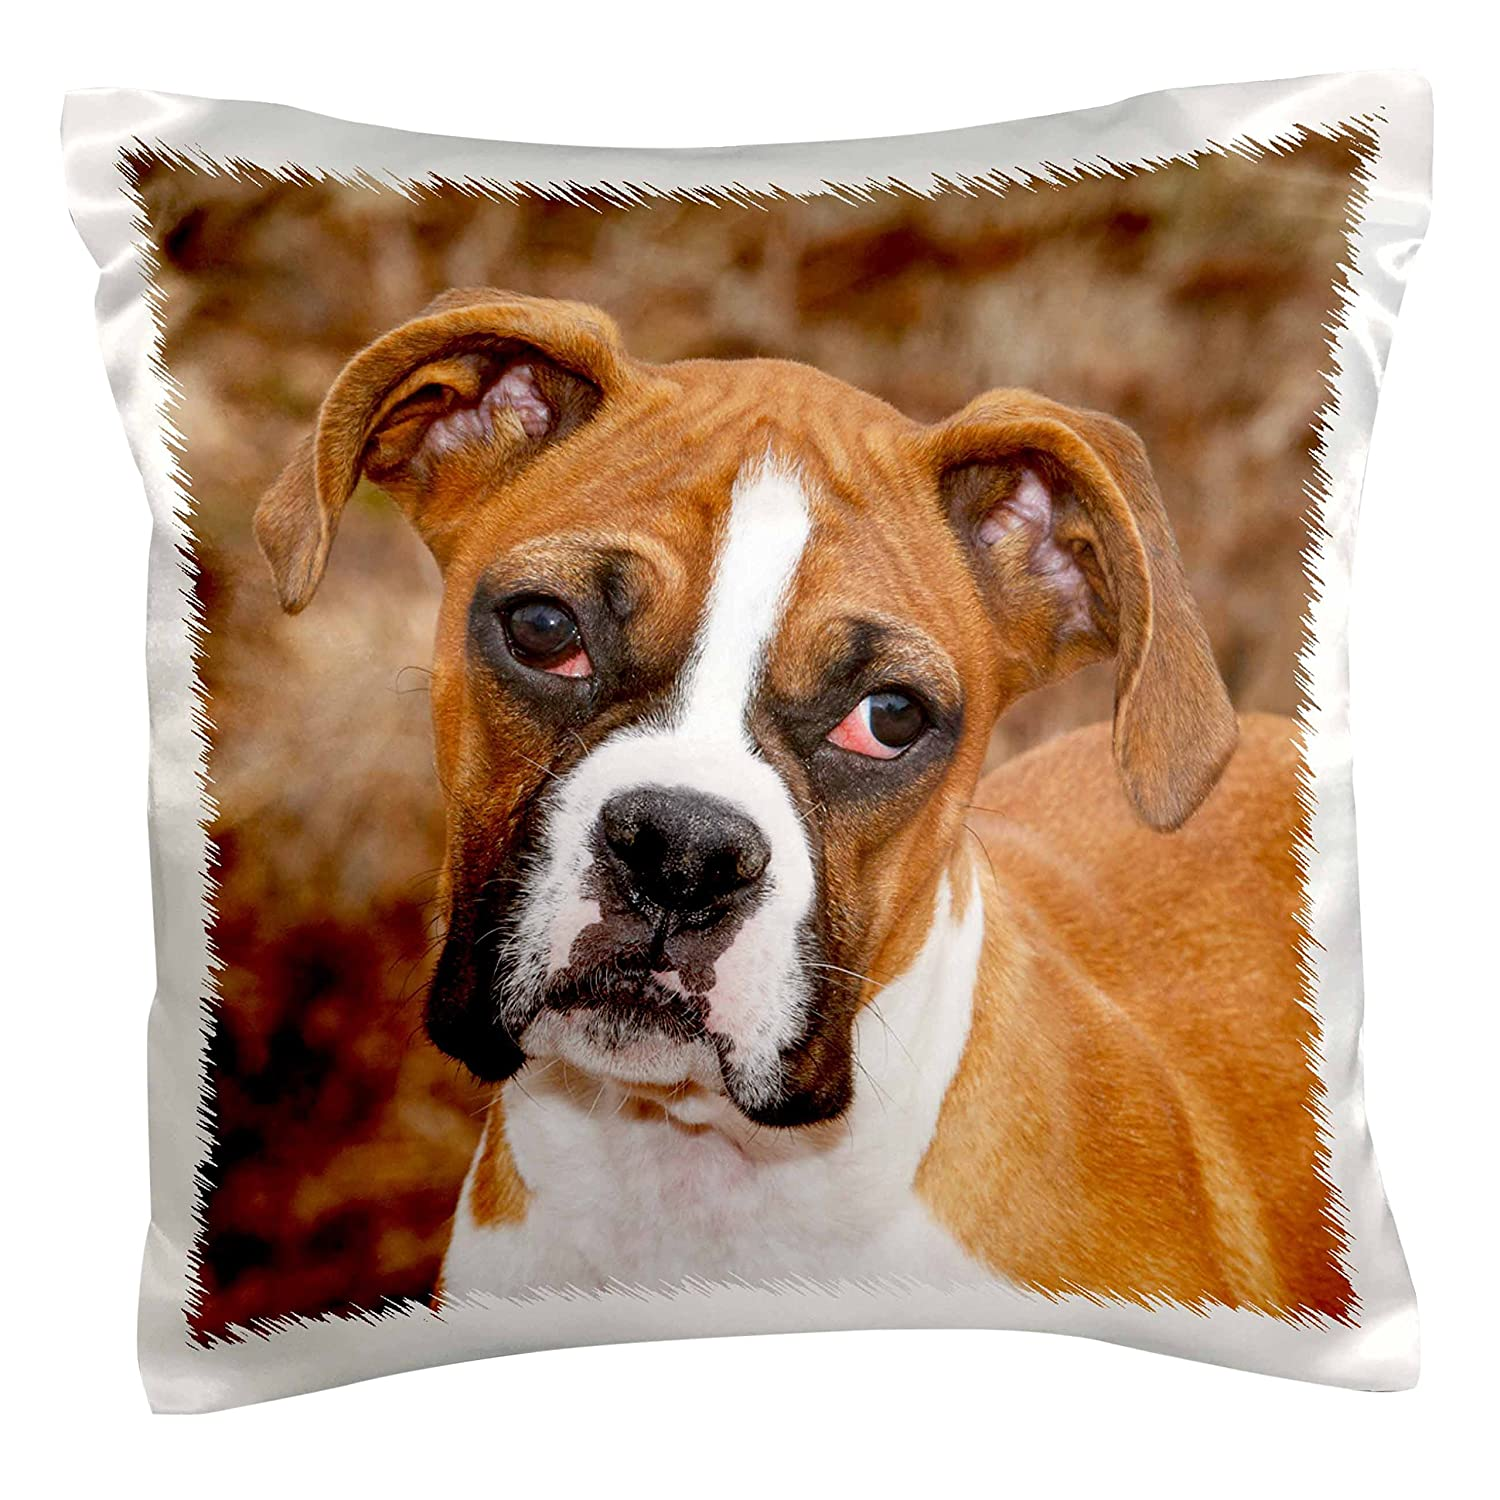 3dRose pc/_140295/_1 Purebred Boxer Dog Na02 Pwo0038 Piperanne Worcester Pillow Case 16 x 16